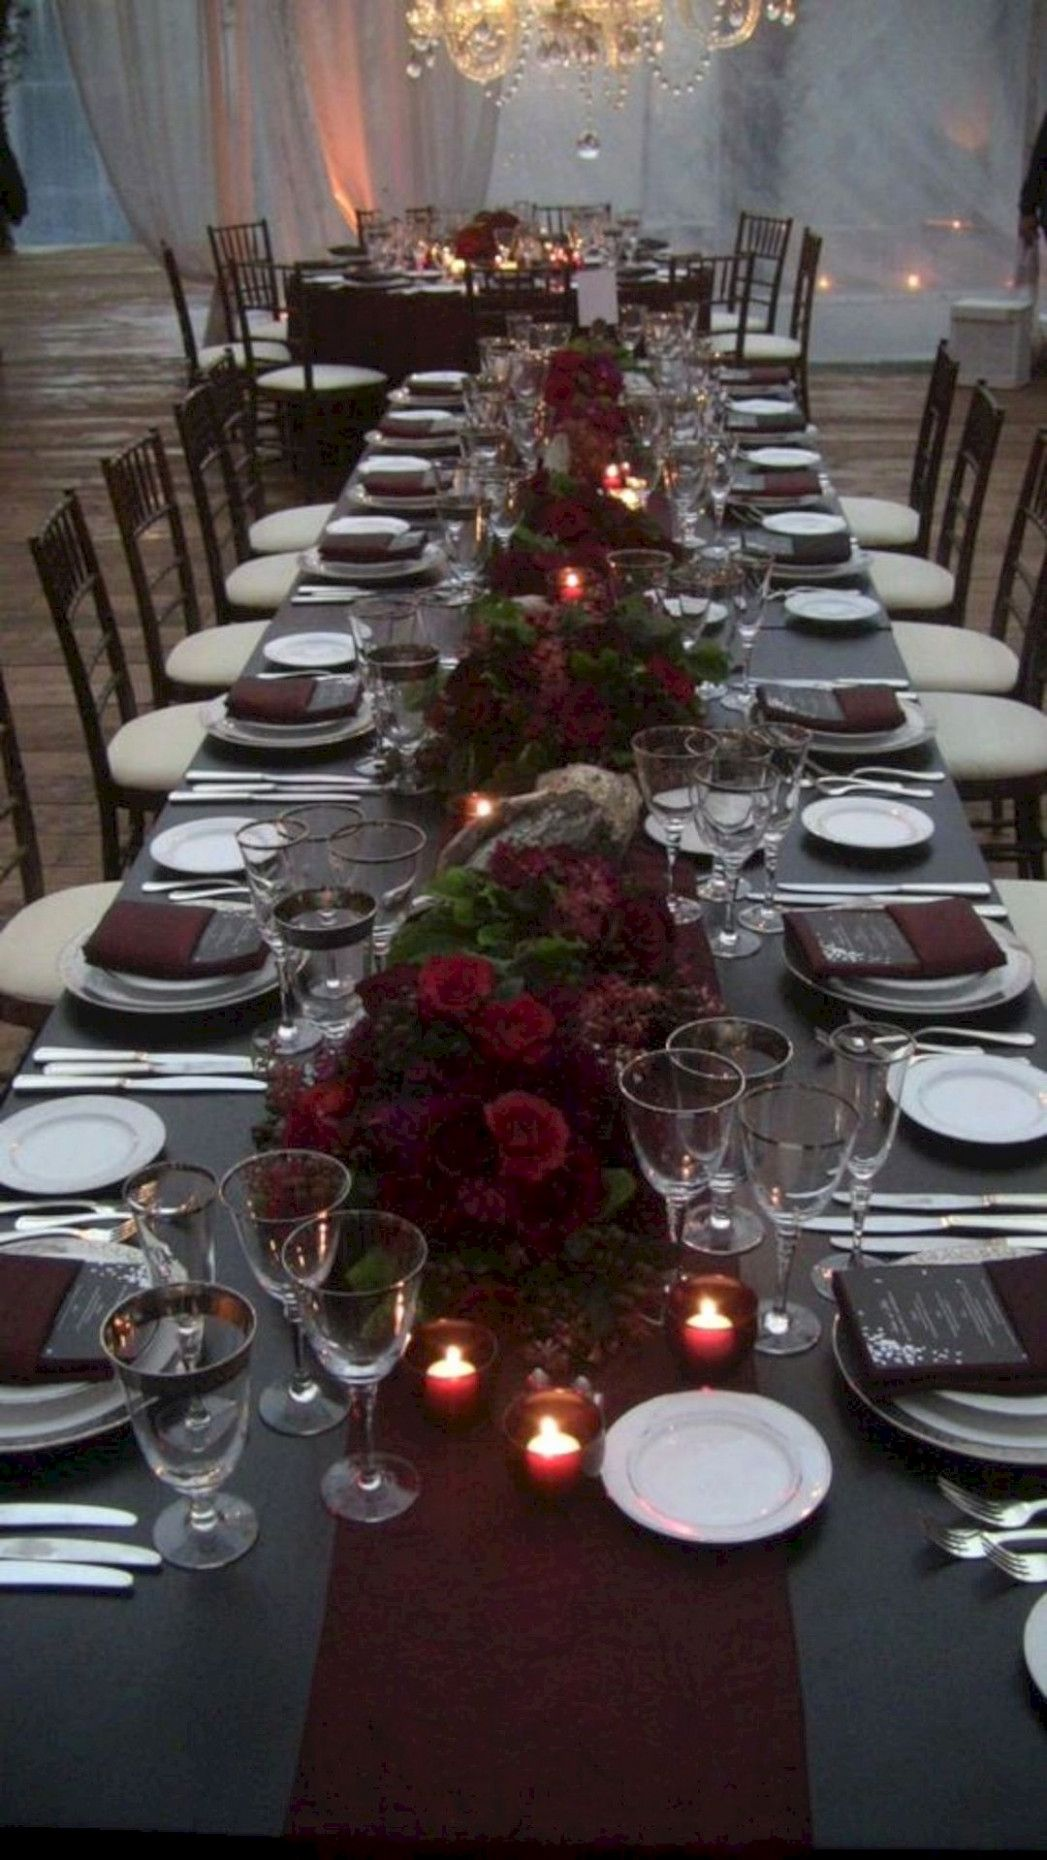 50 Elegant Maroon And Silver Wedding Decorations Wedding Inspirations Wedding Inspirations Fall Wedding Colors Wedding Table Linens Burgundy And Grey Wedding